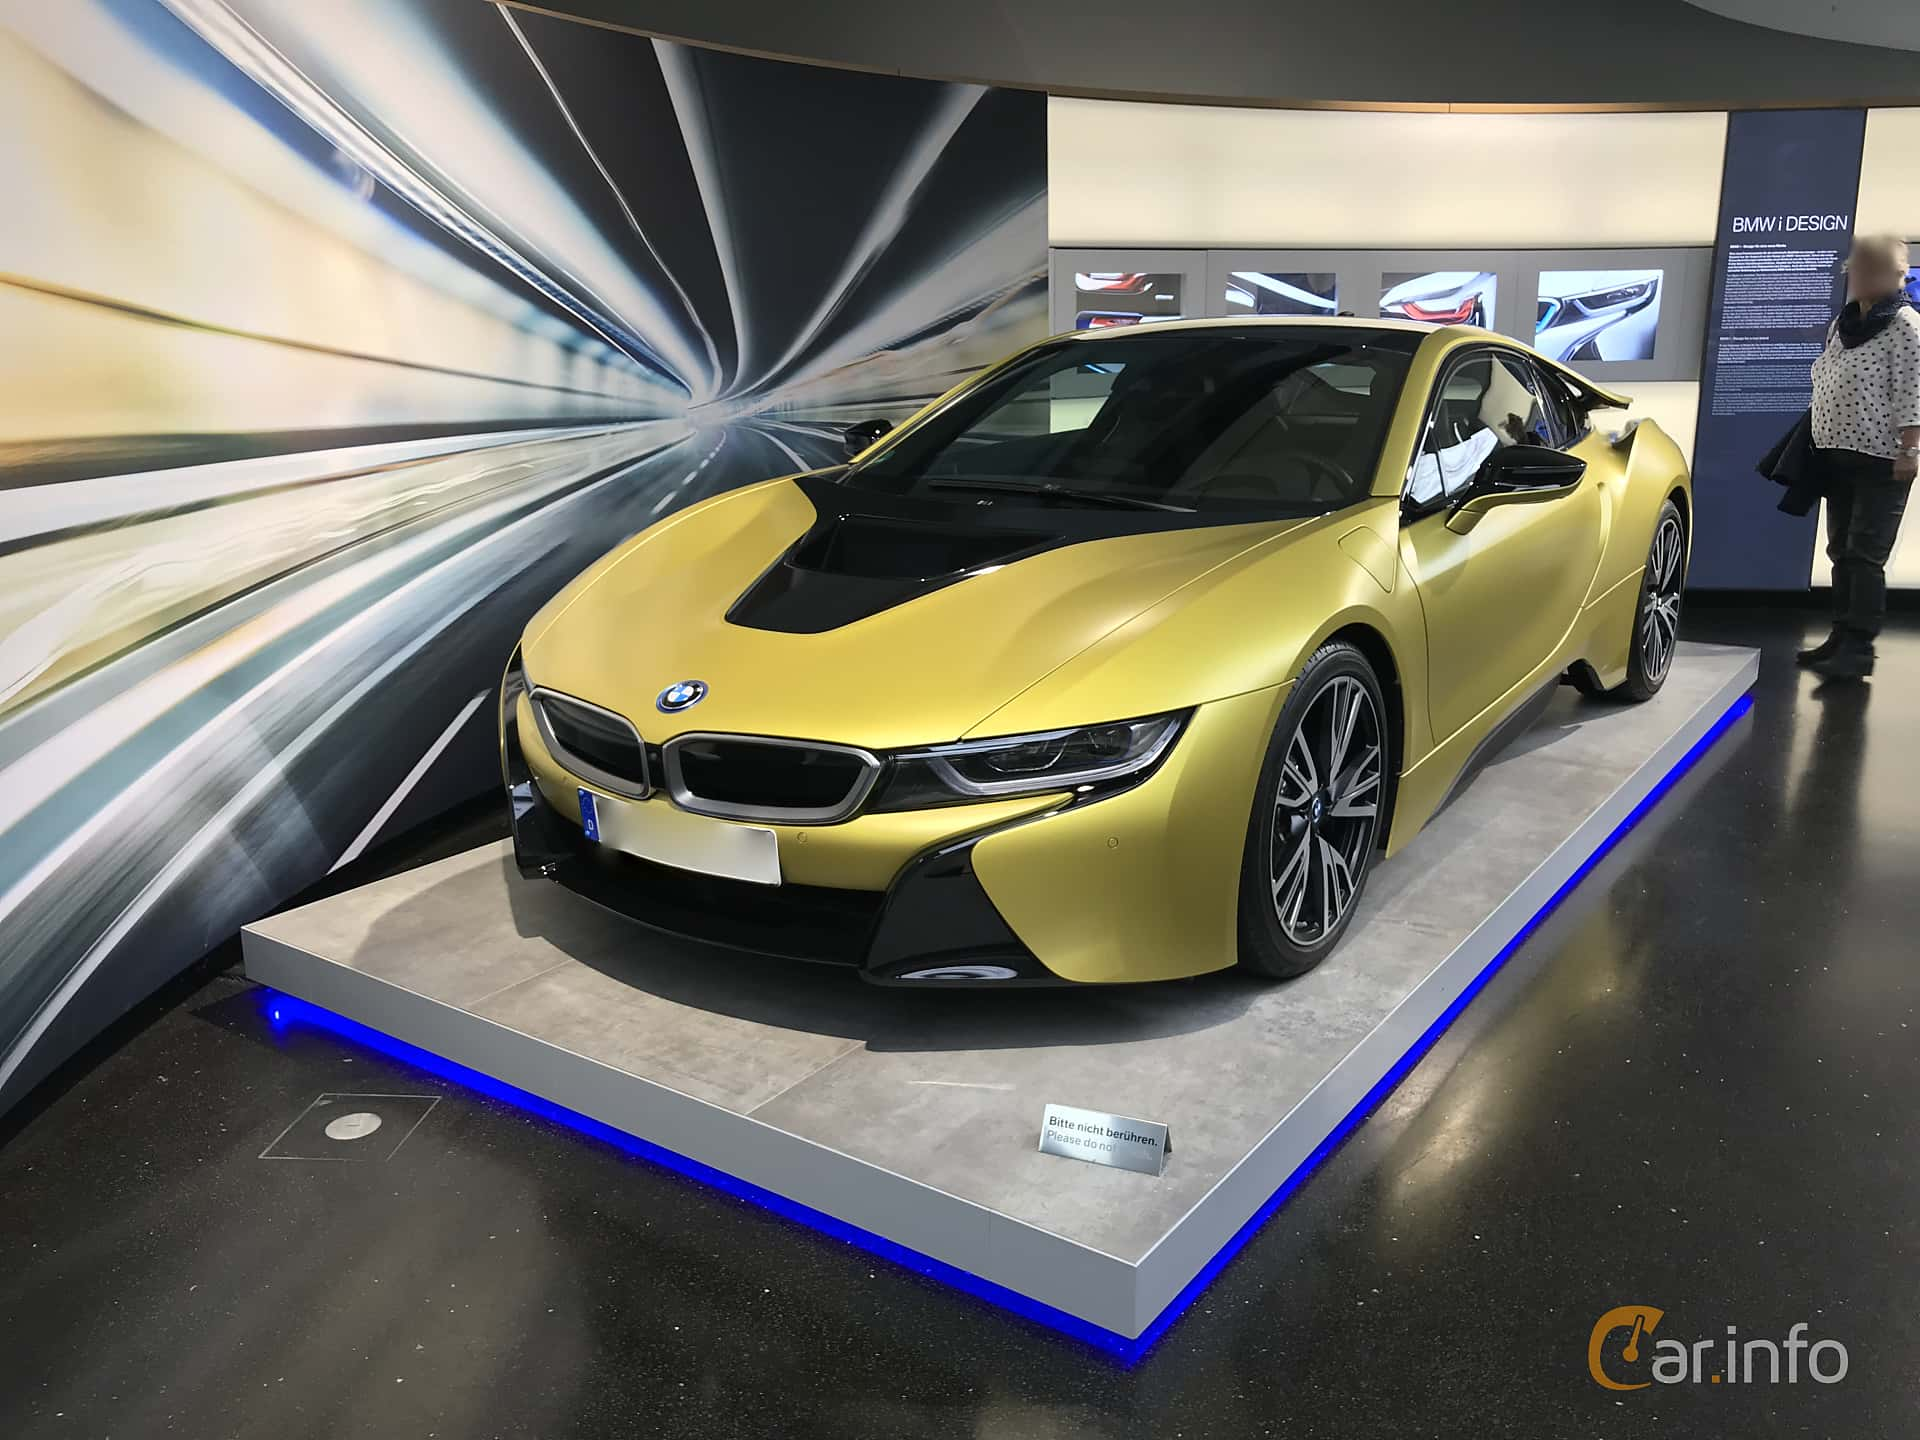 BMW i8 1.5 + 7.1 kWh Steptronic, 362hp, 2014